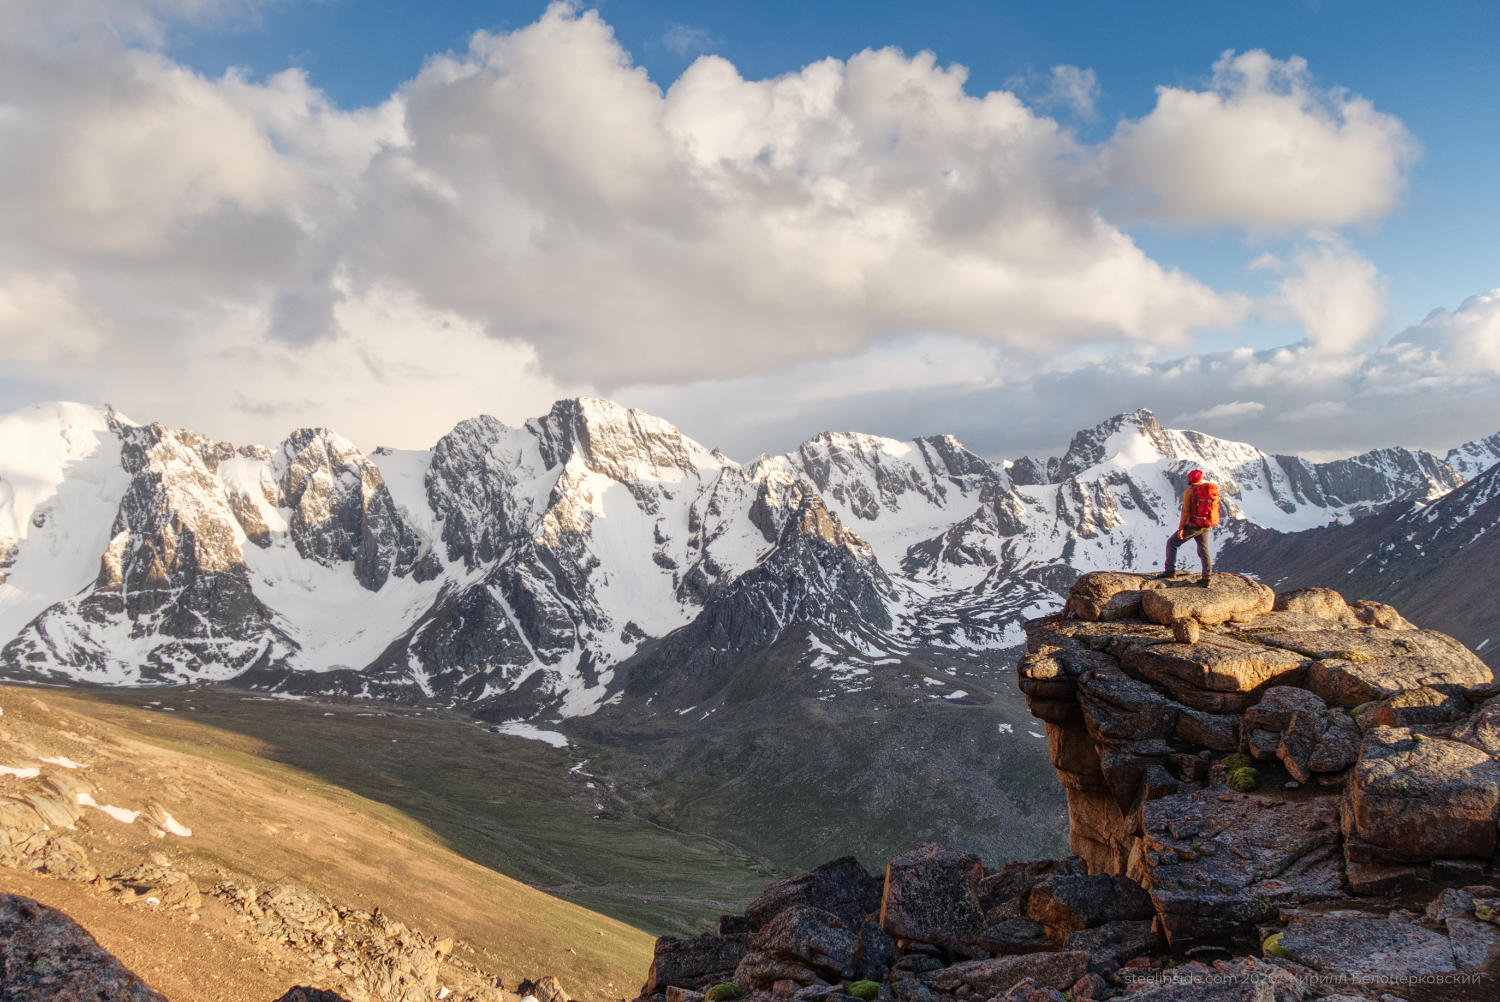 Kirill Belotserkovskiy staring at Kyrgyz range